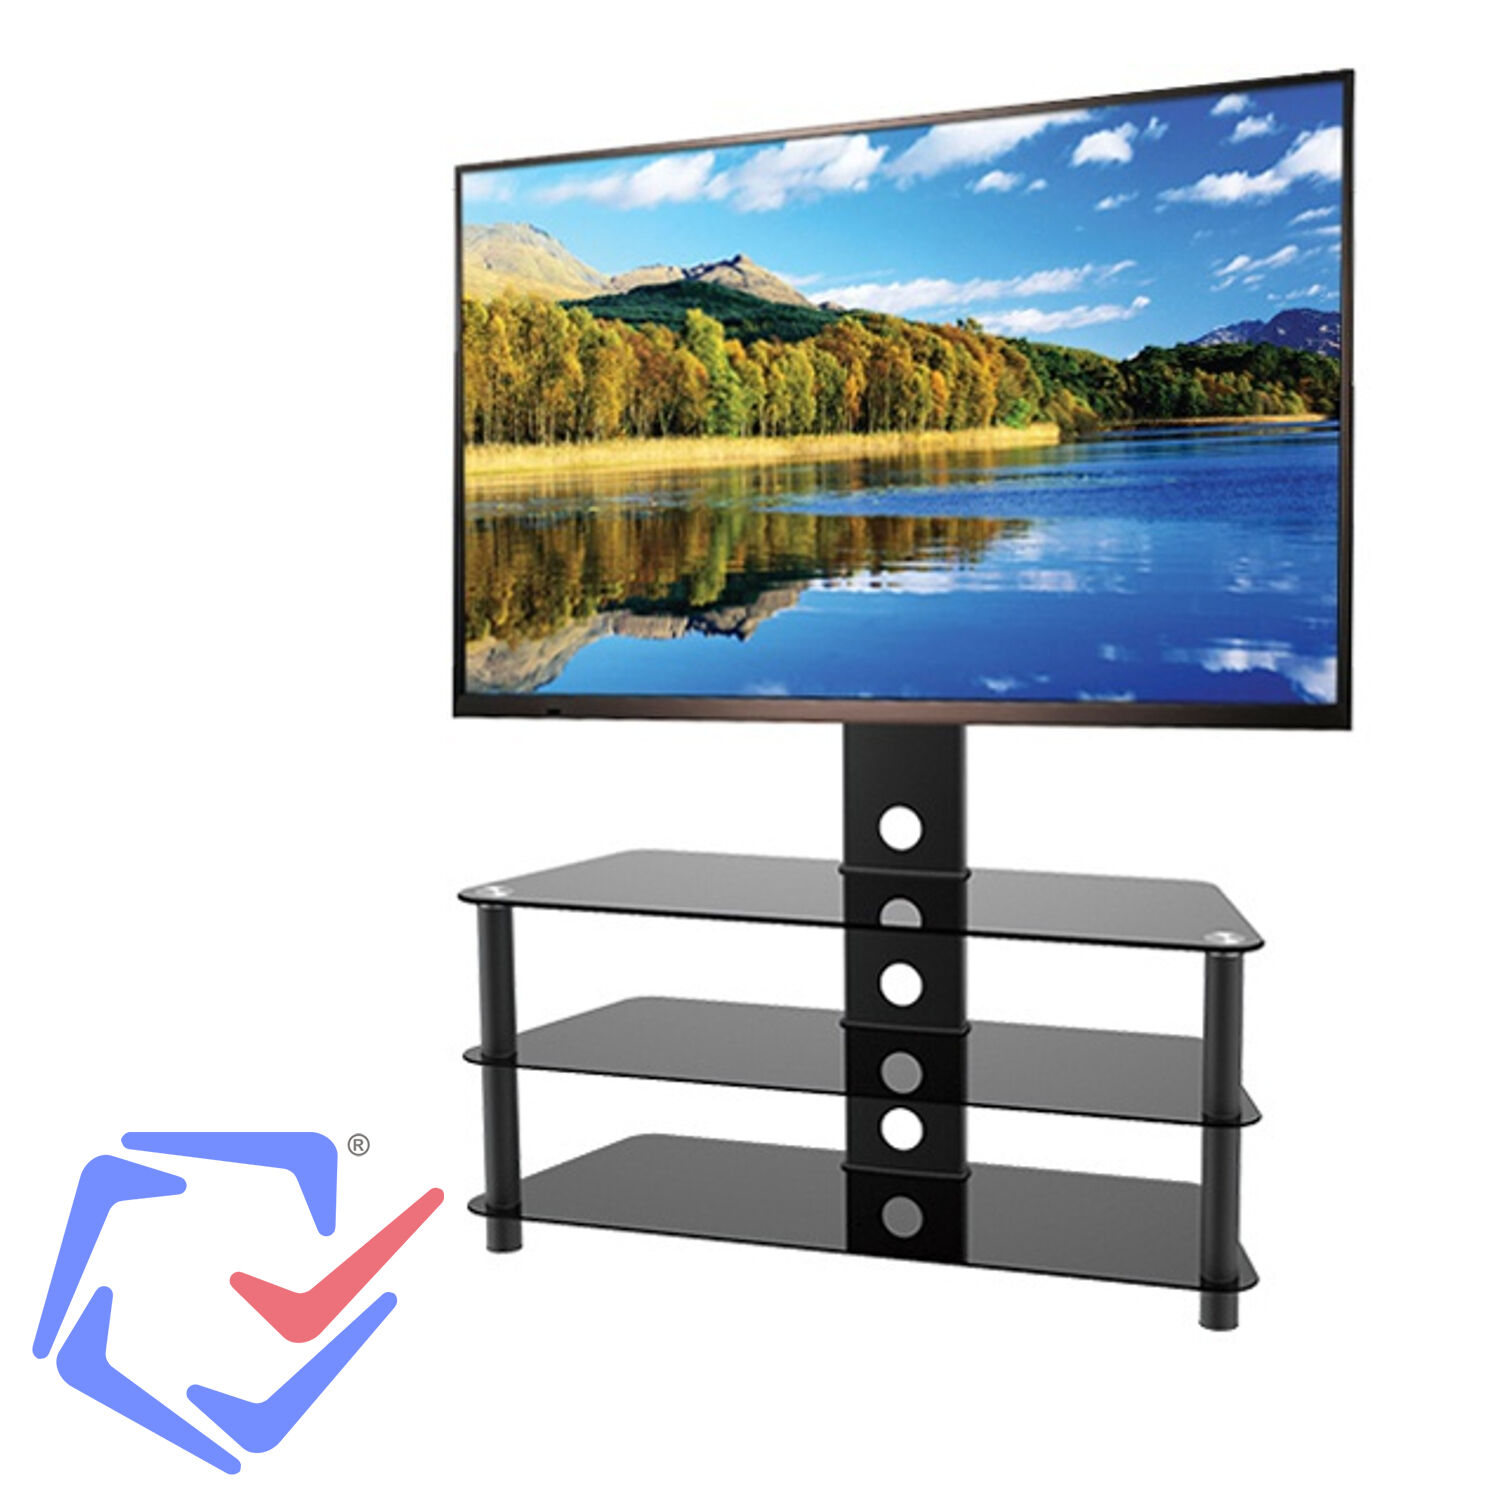 fernseher halterung schrank tv lcd led plasma hifi regale st nder halter neu eur 99 99. Black Bedroom Furniture Sets. Home Design Ideas